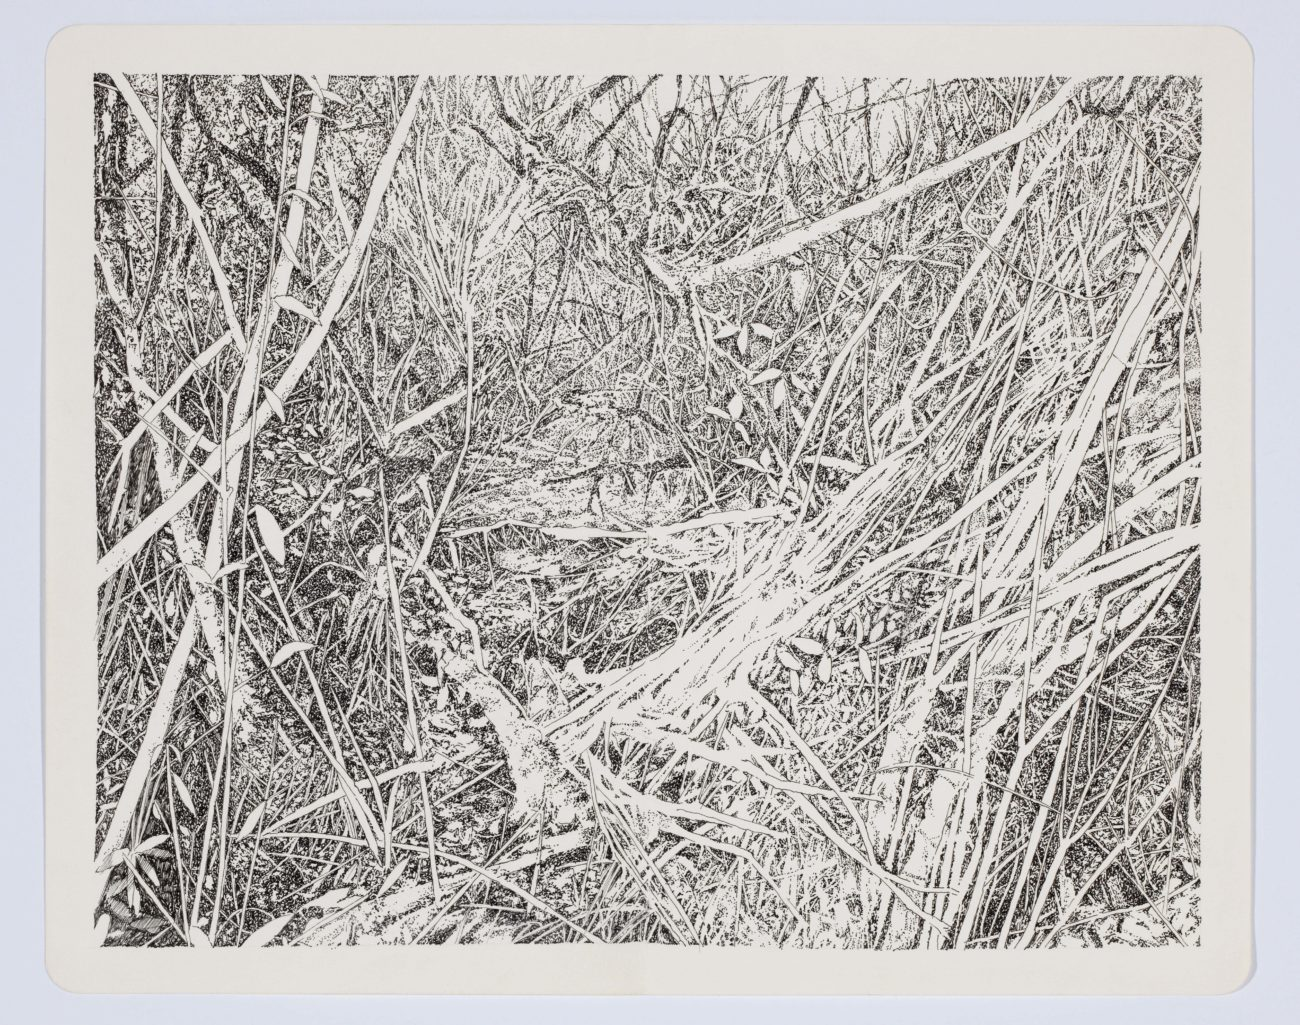 Emmanuel Henninger, Art, French, Forest, Black and White, Ink, Territories, Contemporary art, Jungle